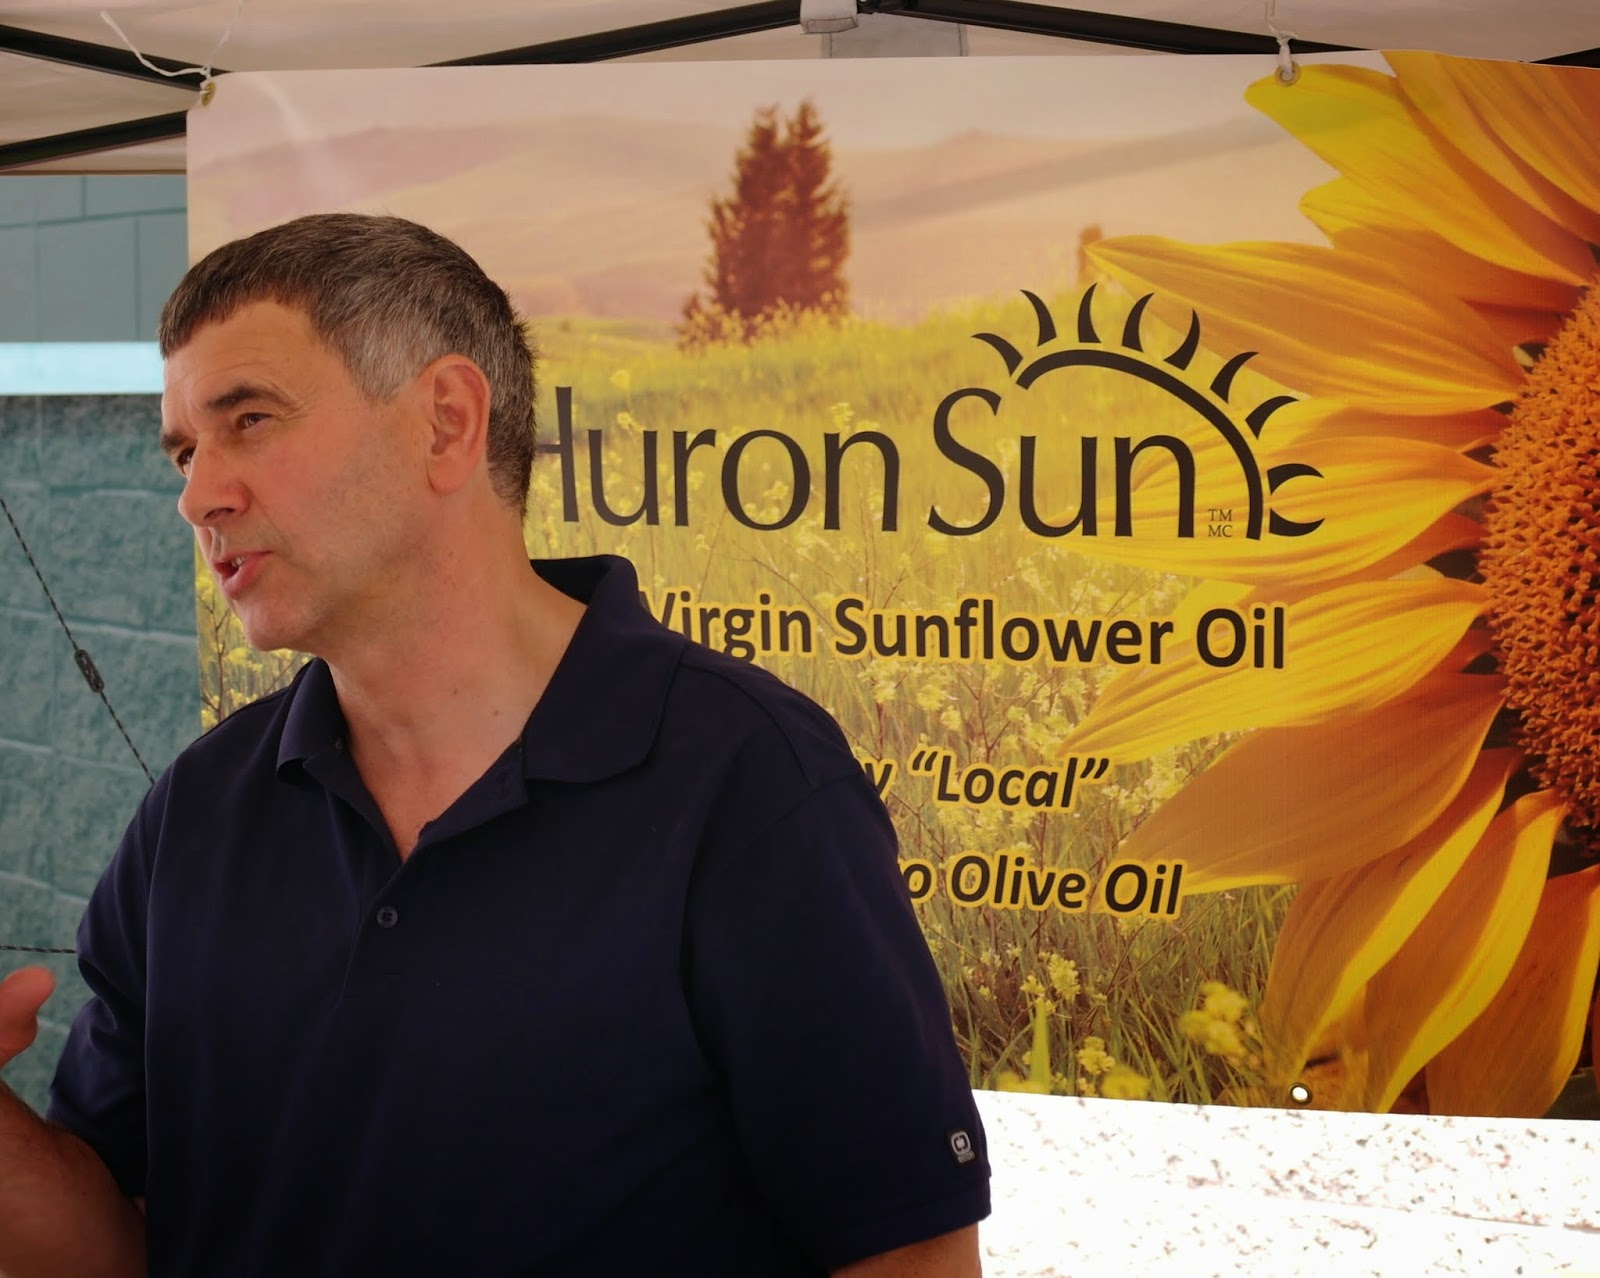 Sunflower Oil from Huronia